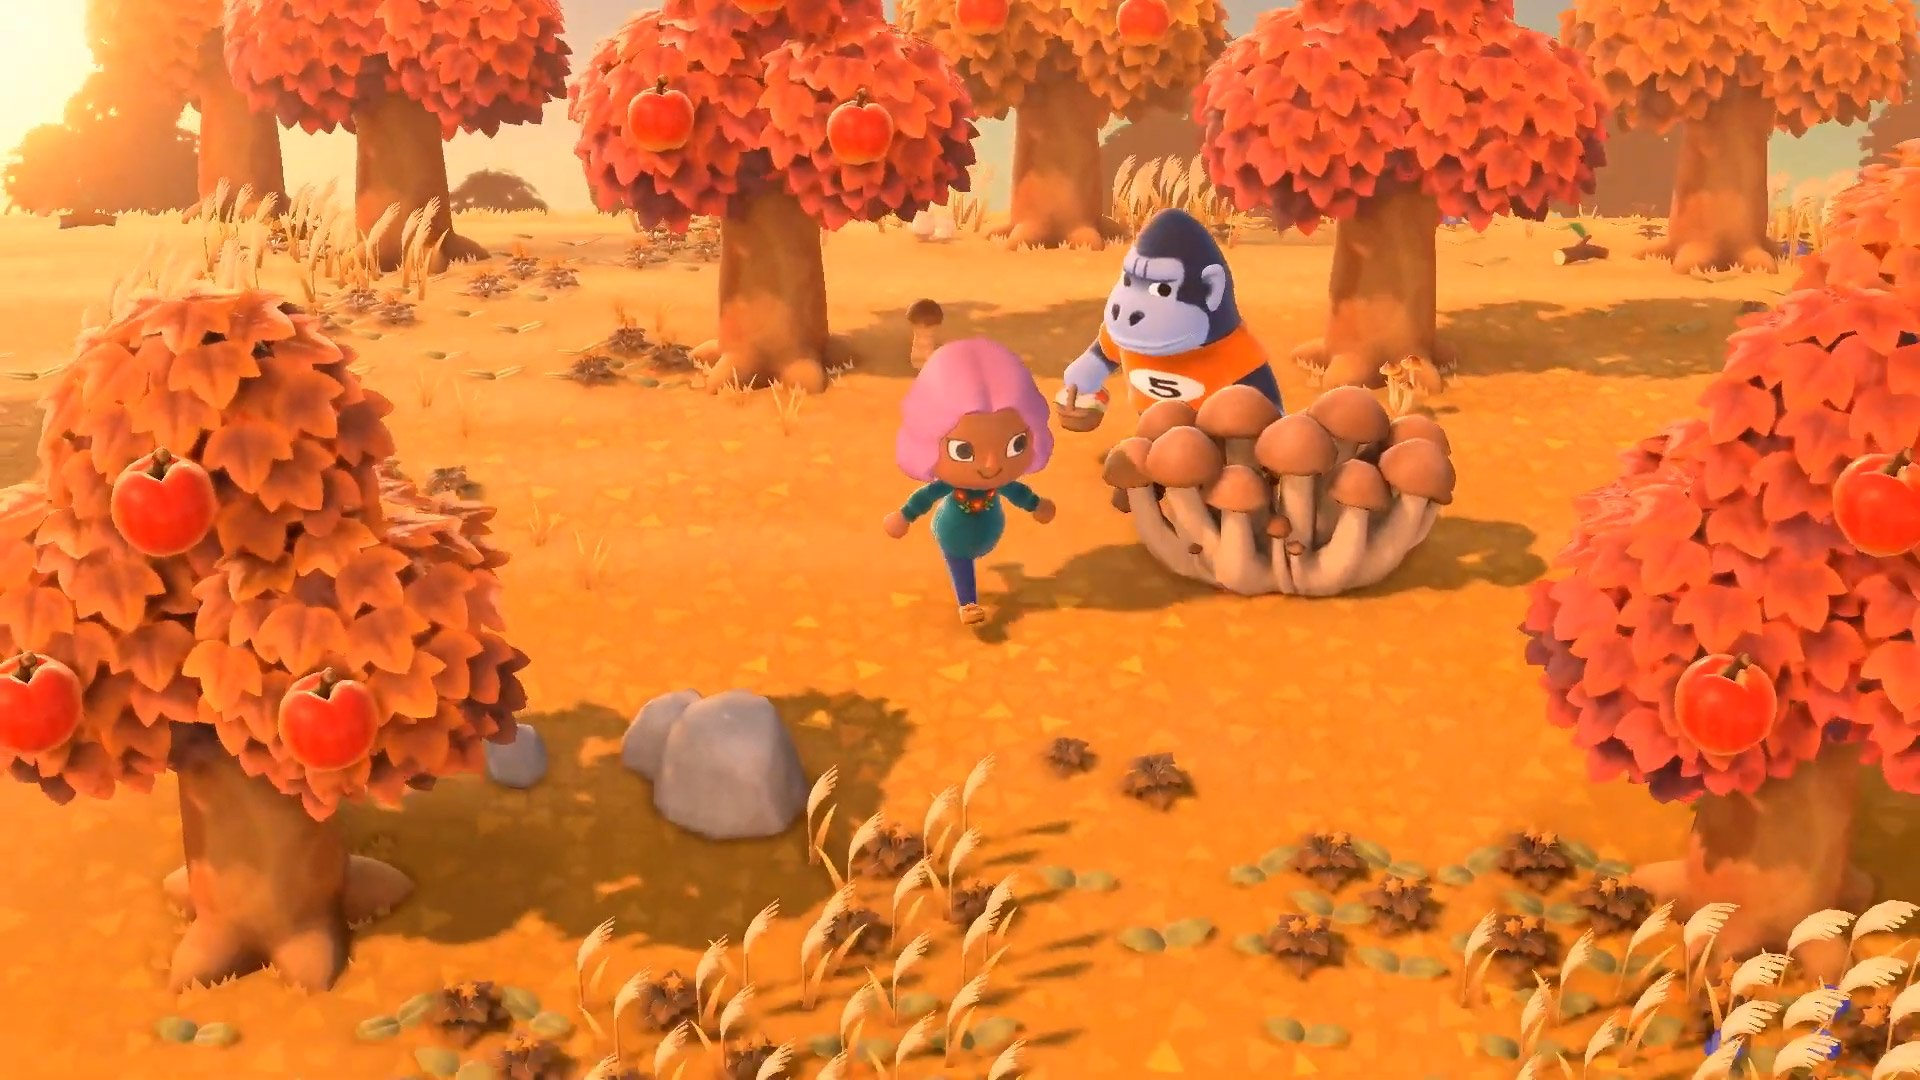 animal crossing new horizons hd wallpaper 69256